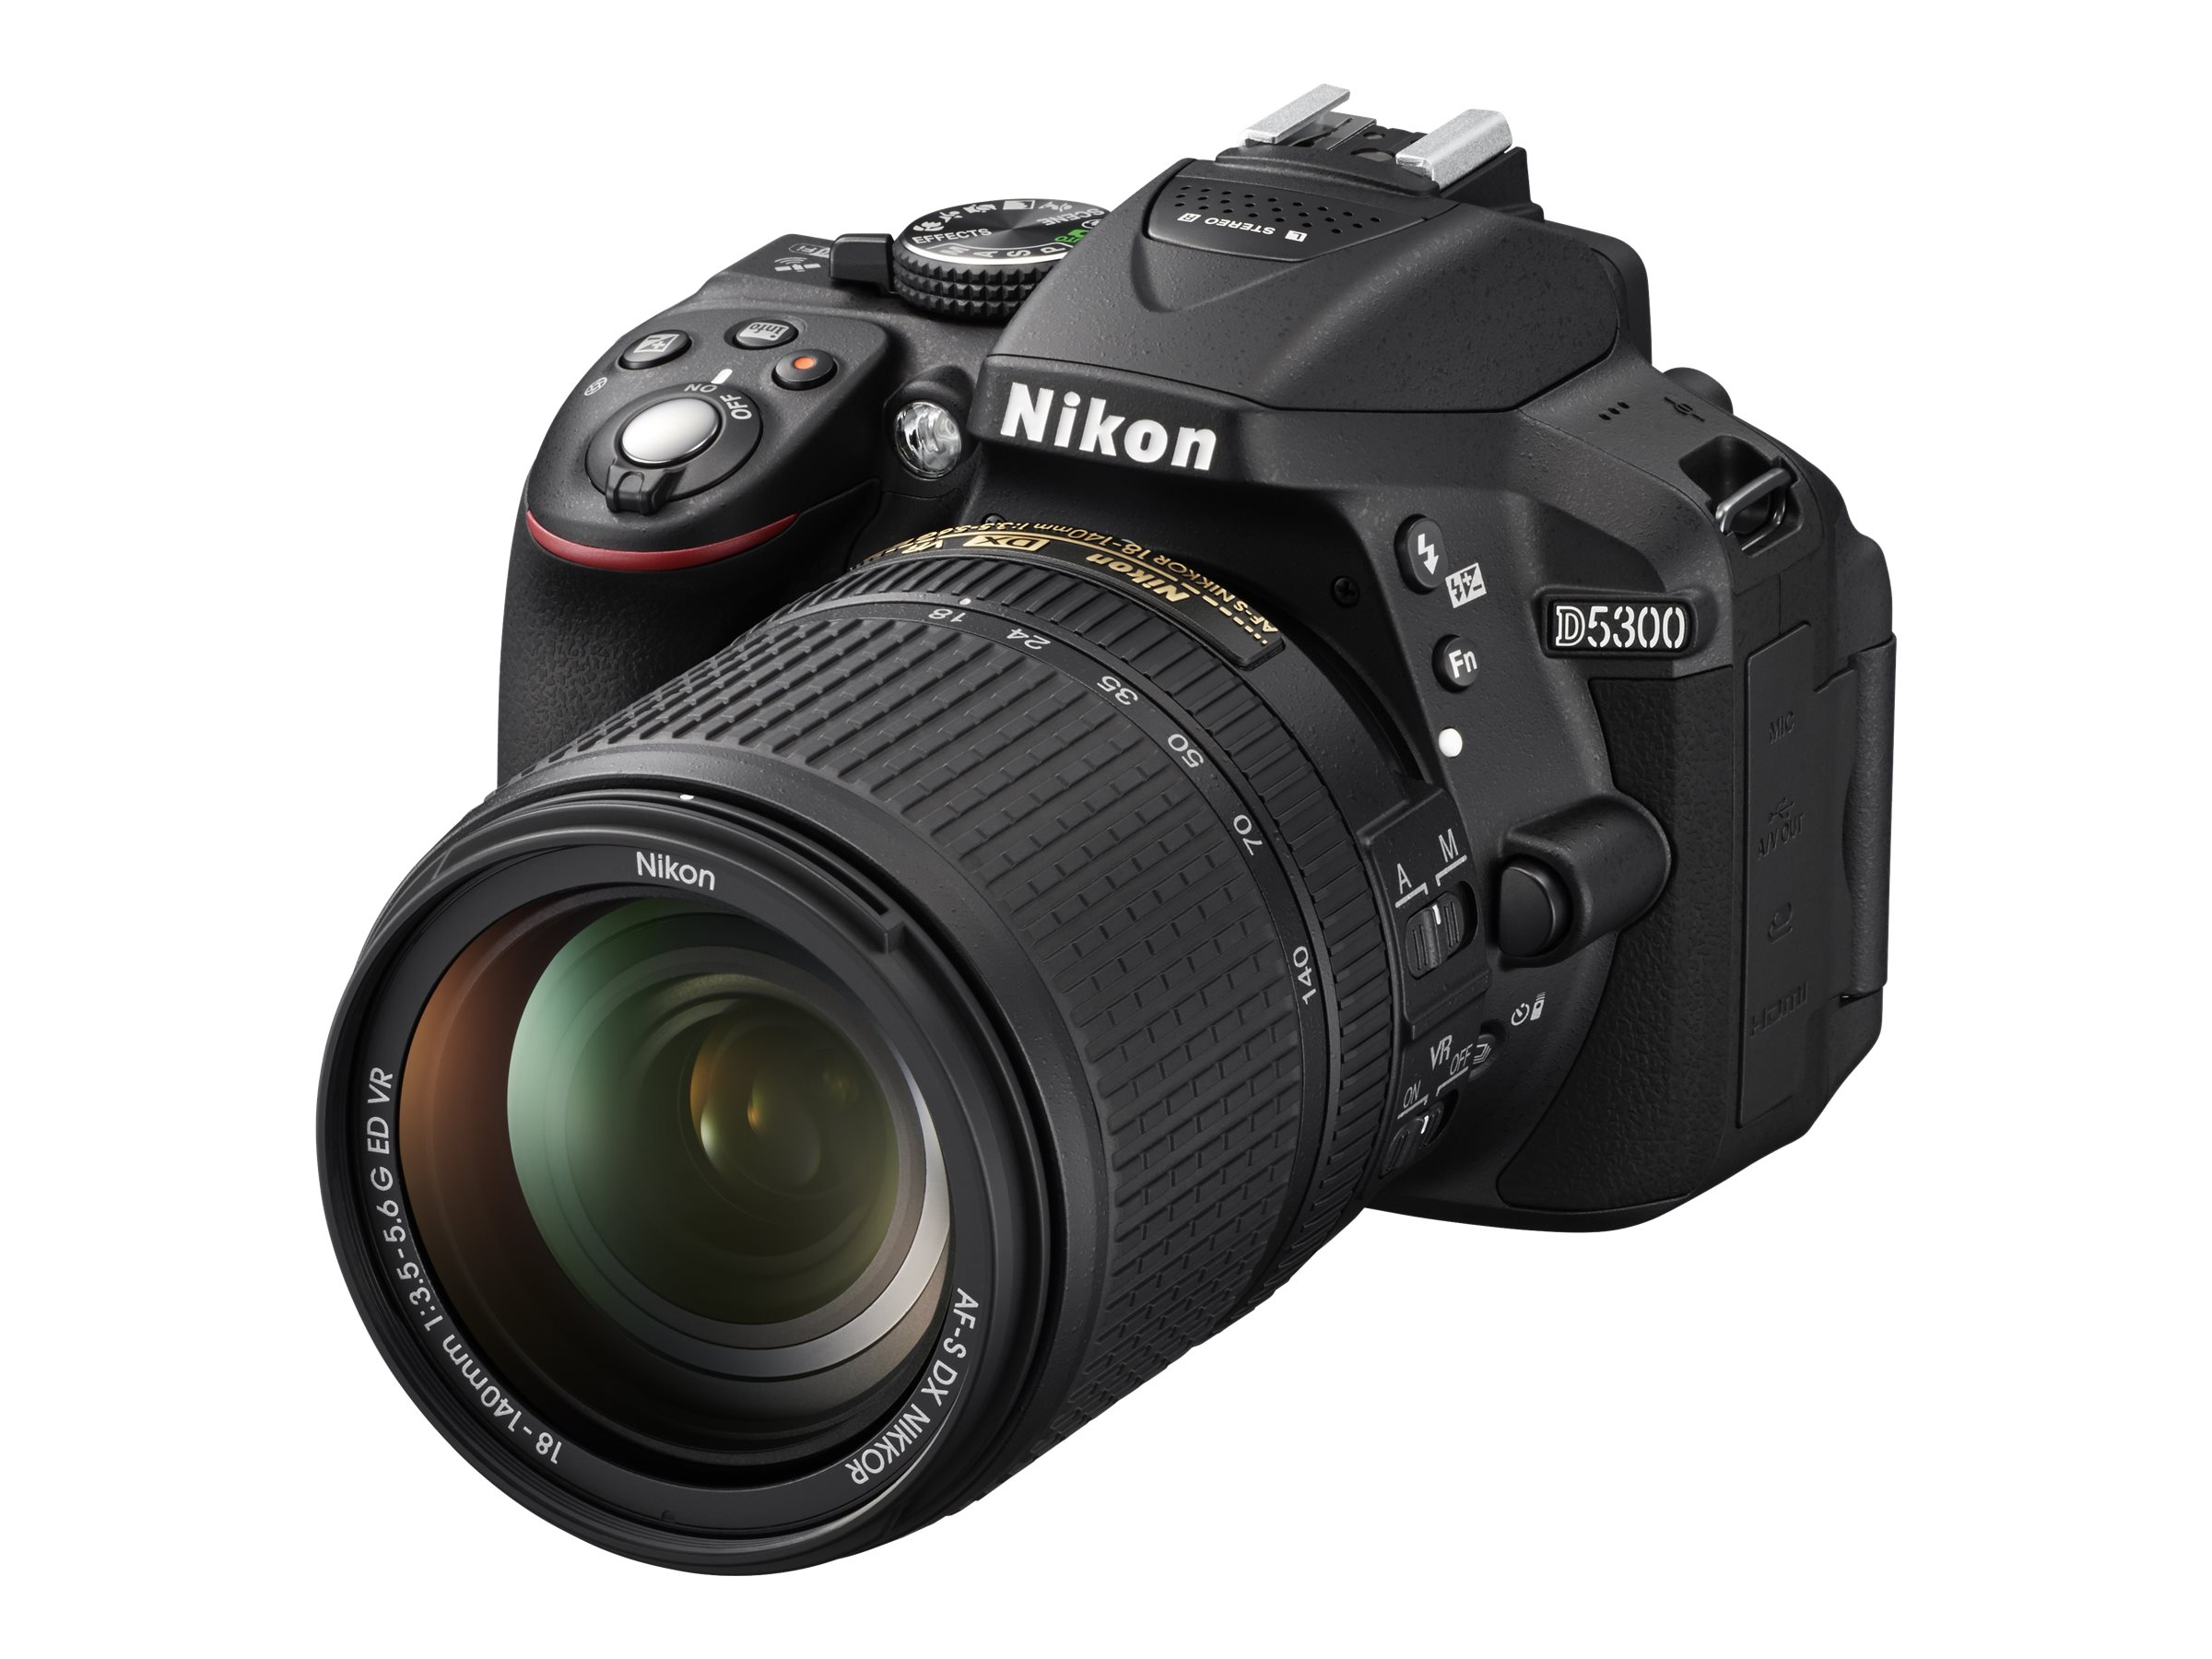 Nikon D5300 DX-Format Digital SLR with 18-140mm VR Lens - Black